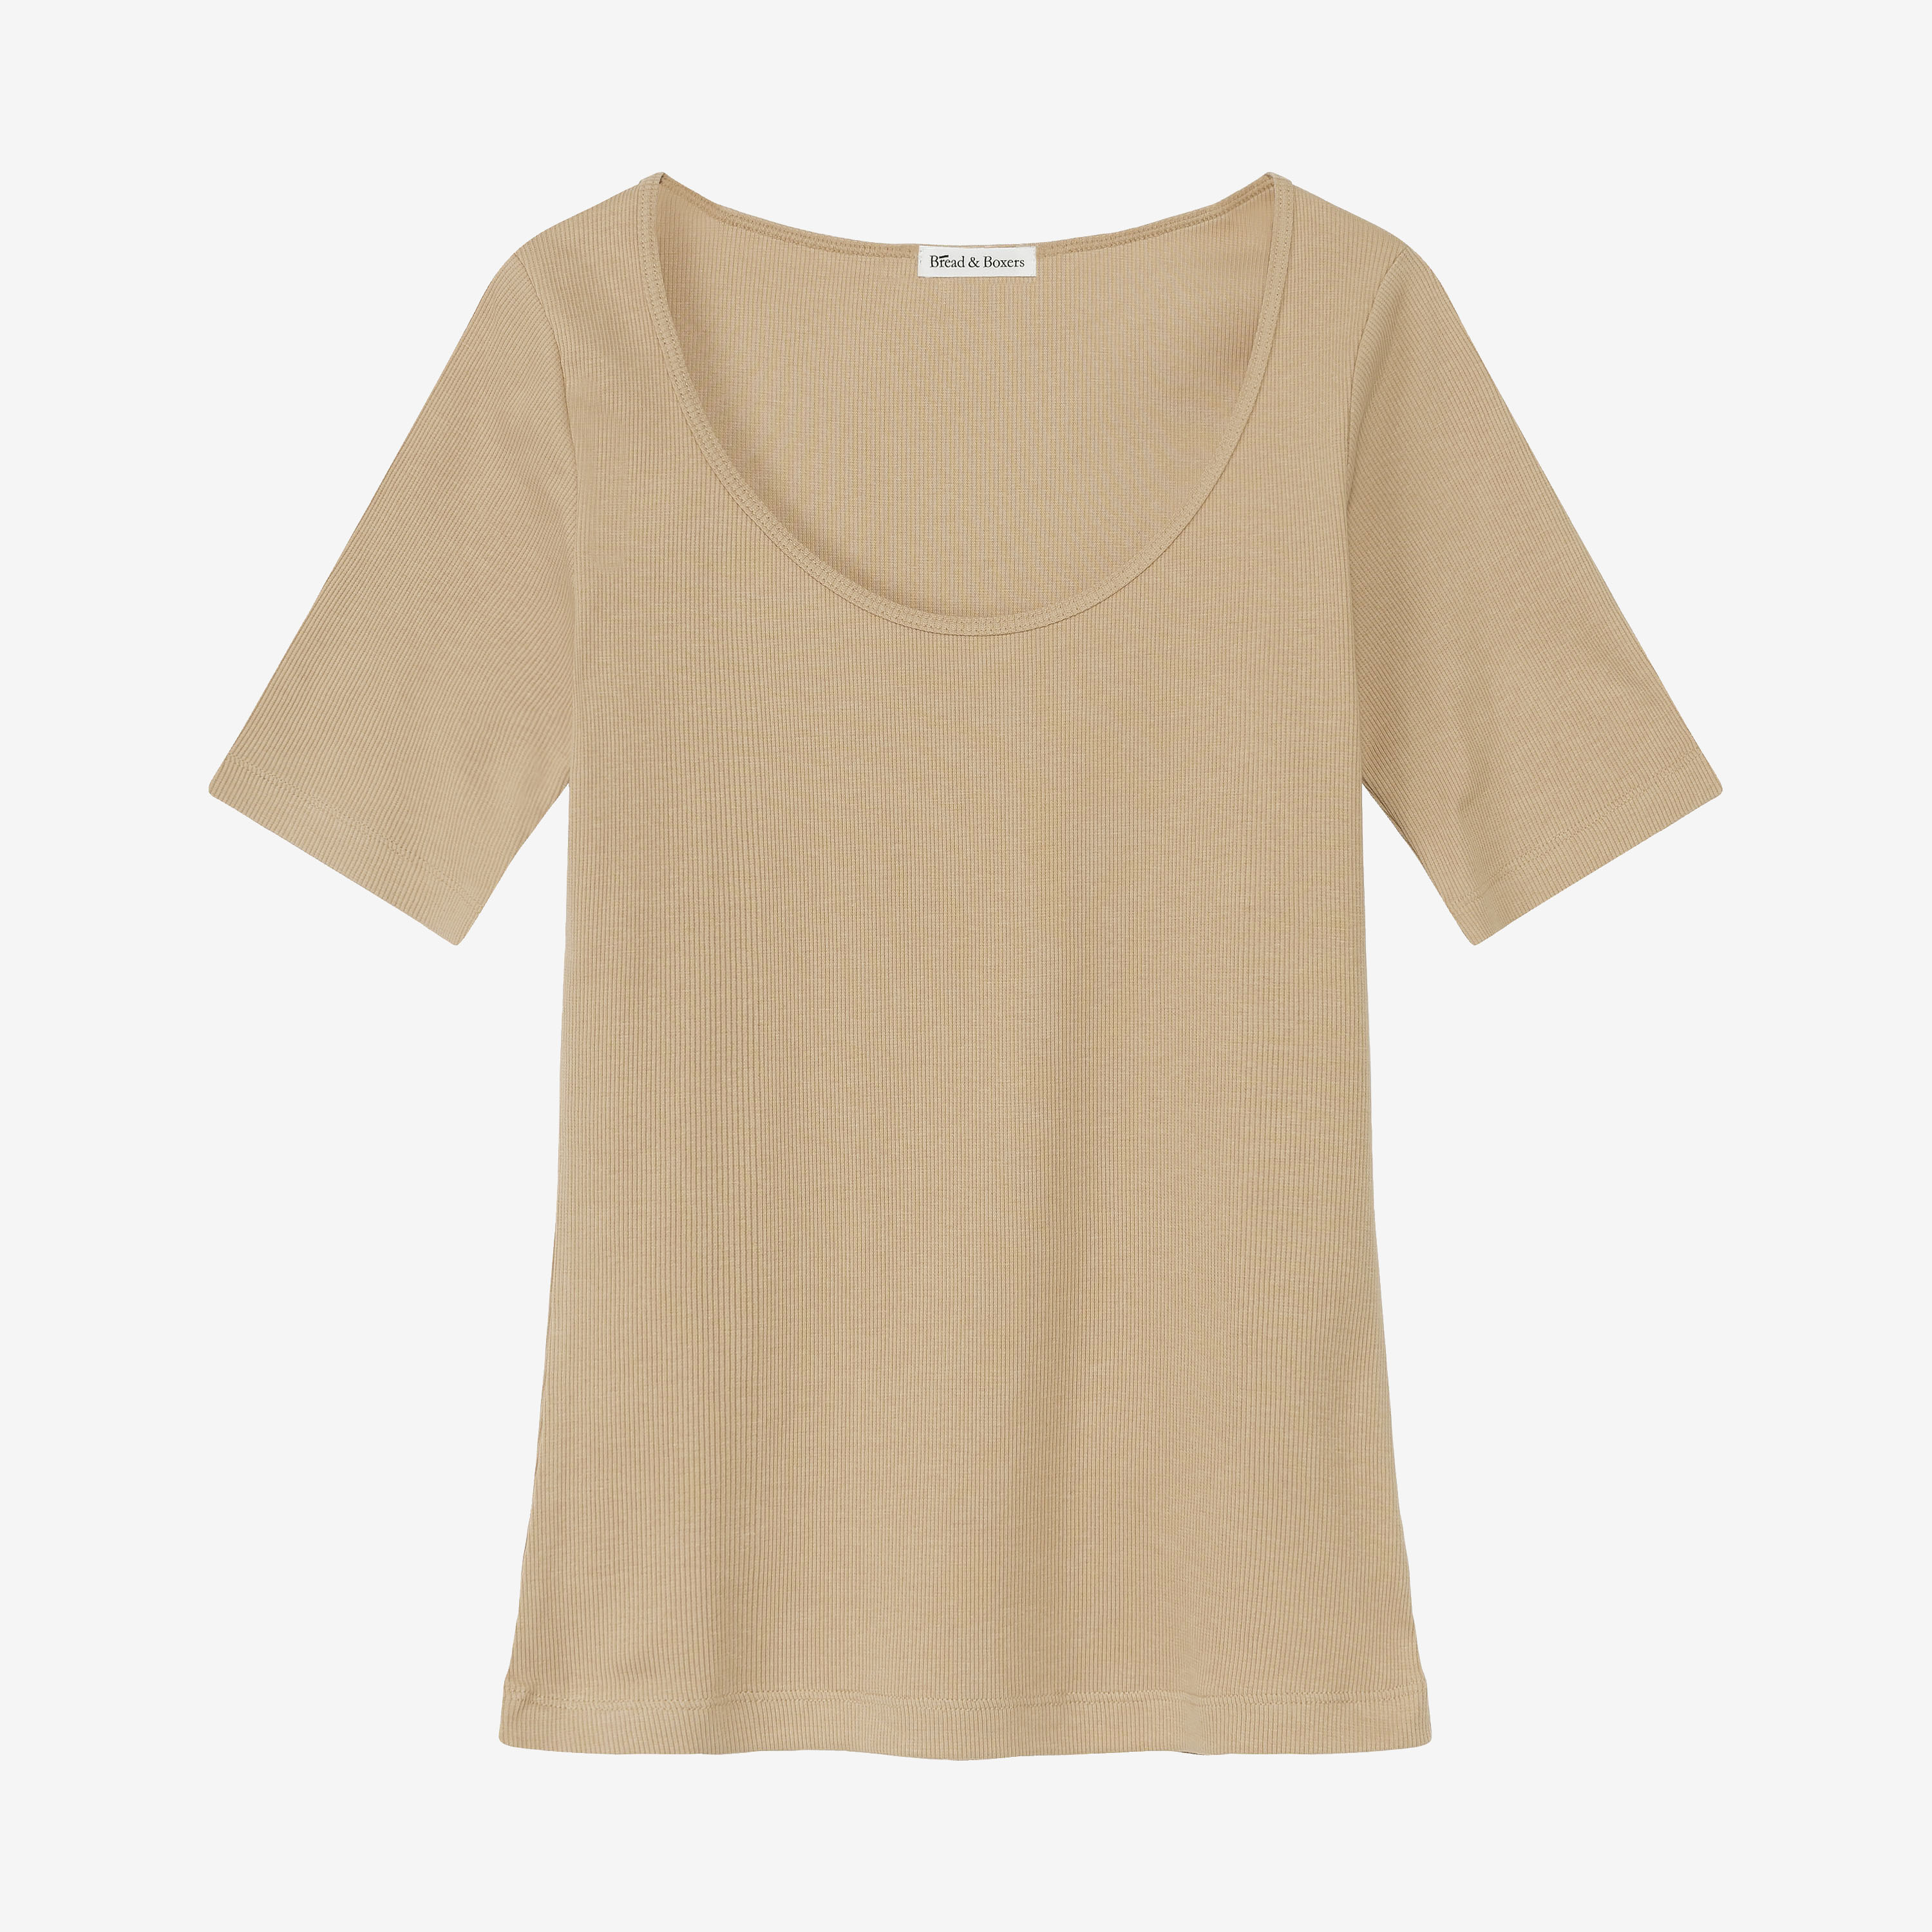 633-05_T-shirt_ribbed_beige_CO-A